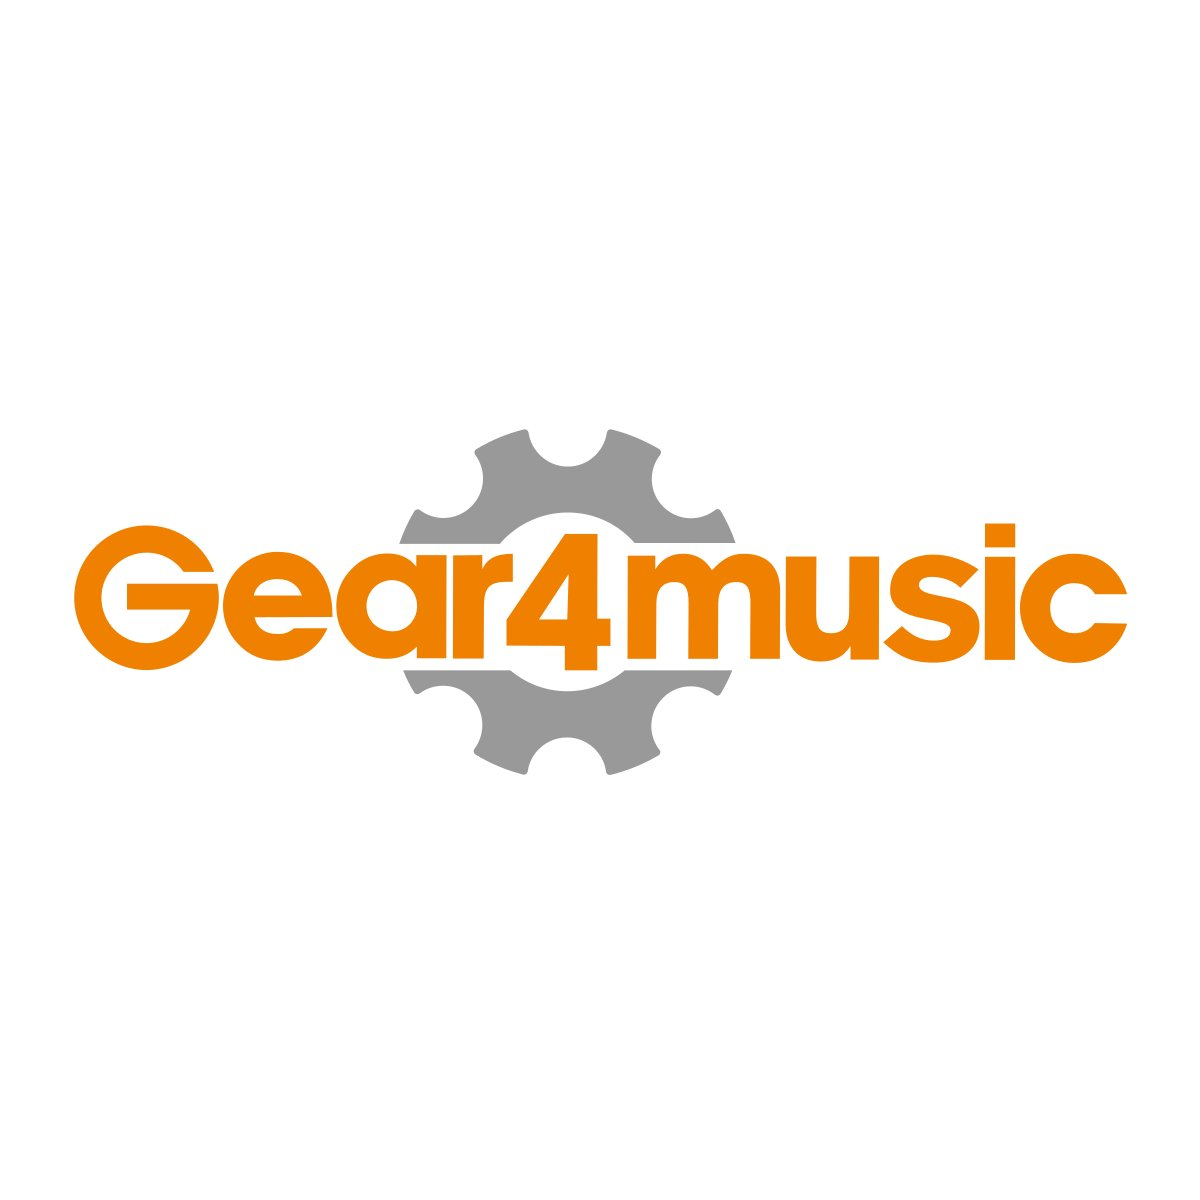 Accordéon par Gear4music, 24 basses